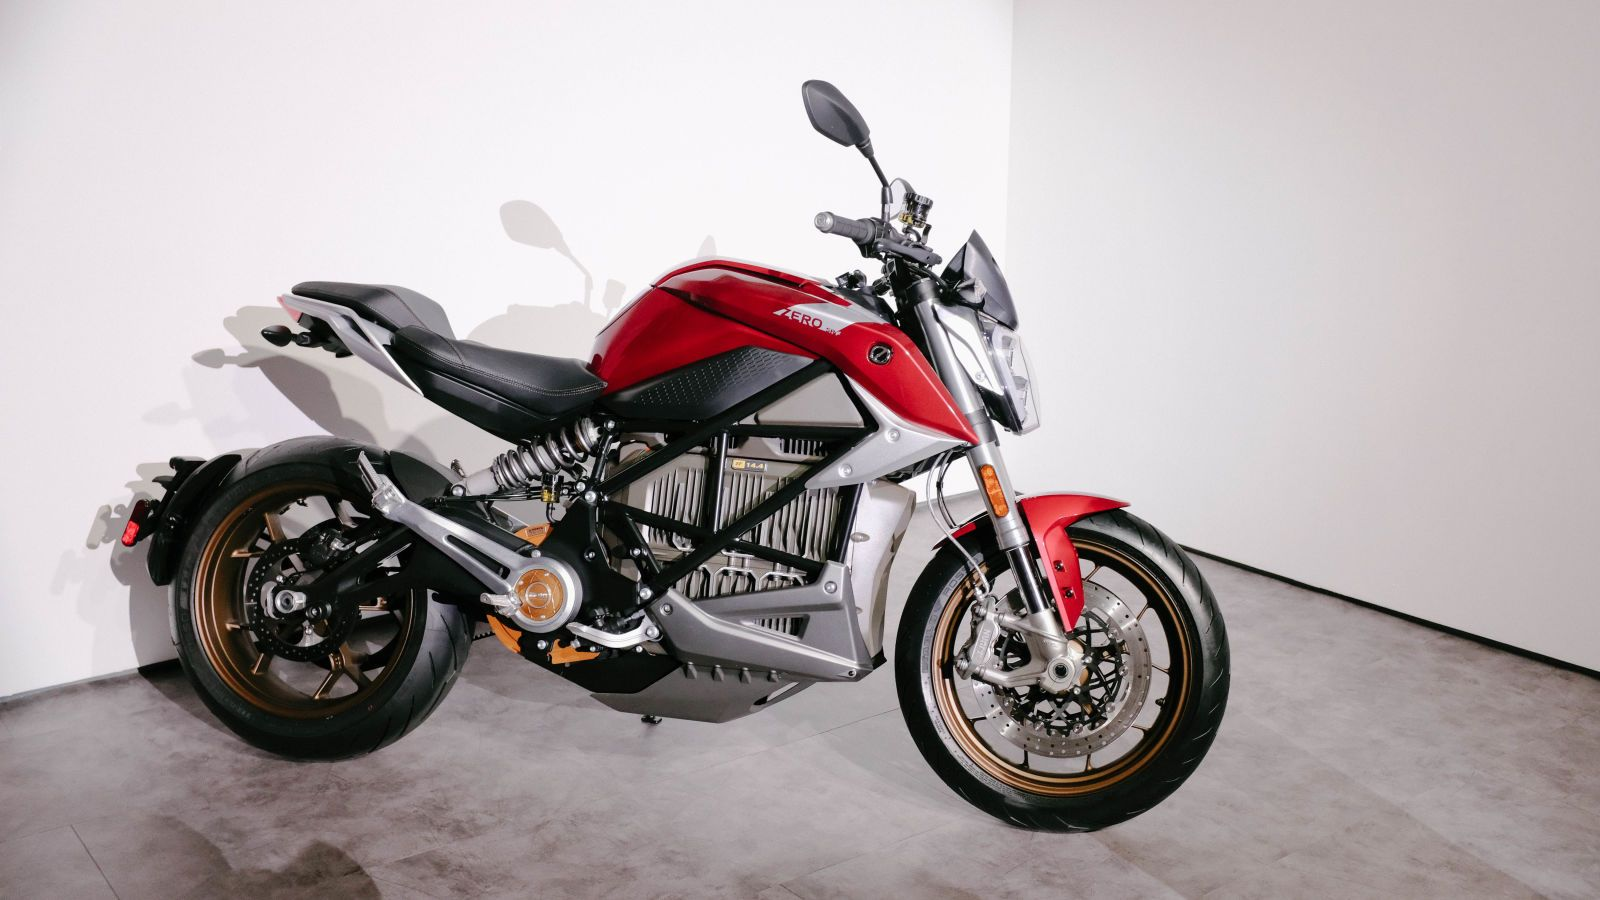 The Zero Sr F New Electric Motorcycle Can Charge 150 Miles In An Hour